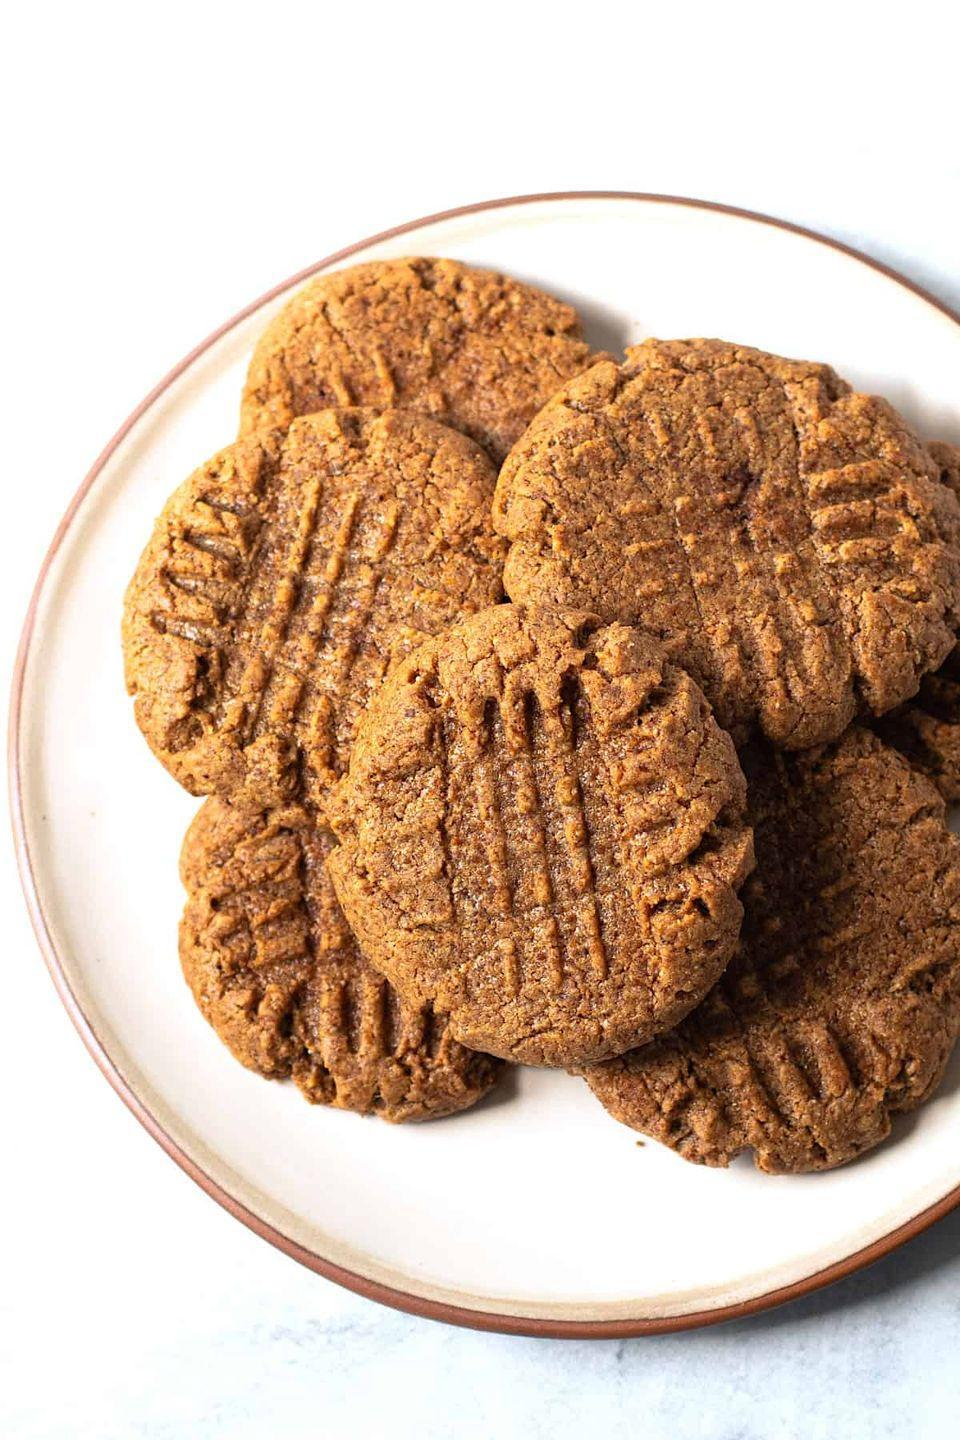 """<p>This one-bowl recipe will satisfy your cookie cravings without the hard work. You can swap in any nut (or seed) butter you like. </p><p><strong>Get the recipe at <a href=""""https://lexiscleankitchen.com/3-ingredient-almond-butter-cookies/"""" rel=""""nofollow noopener"""" target=""""_blank"""" data-ylk=""""slk:Lexi's Clean Kitchen"""" class=""""link rapid-noclick-resp"""">Lexi's Clean Kitchen</a>.</strong></p>"""